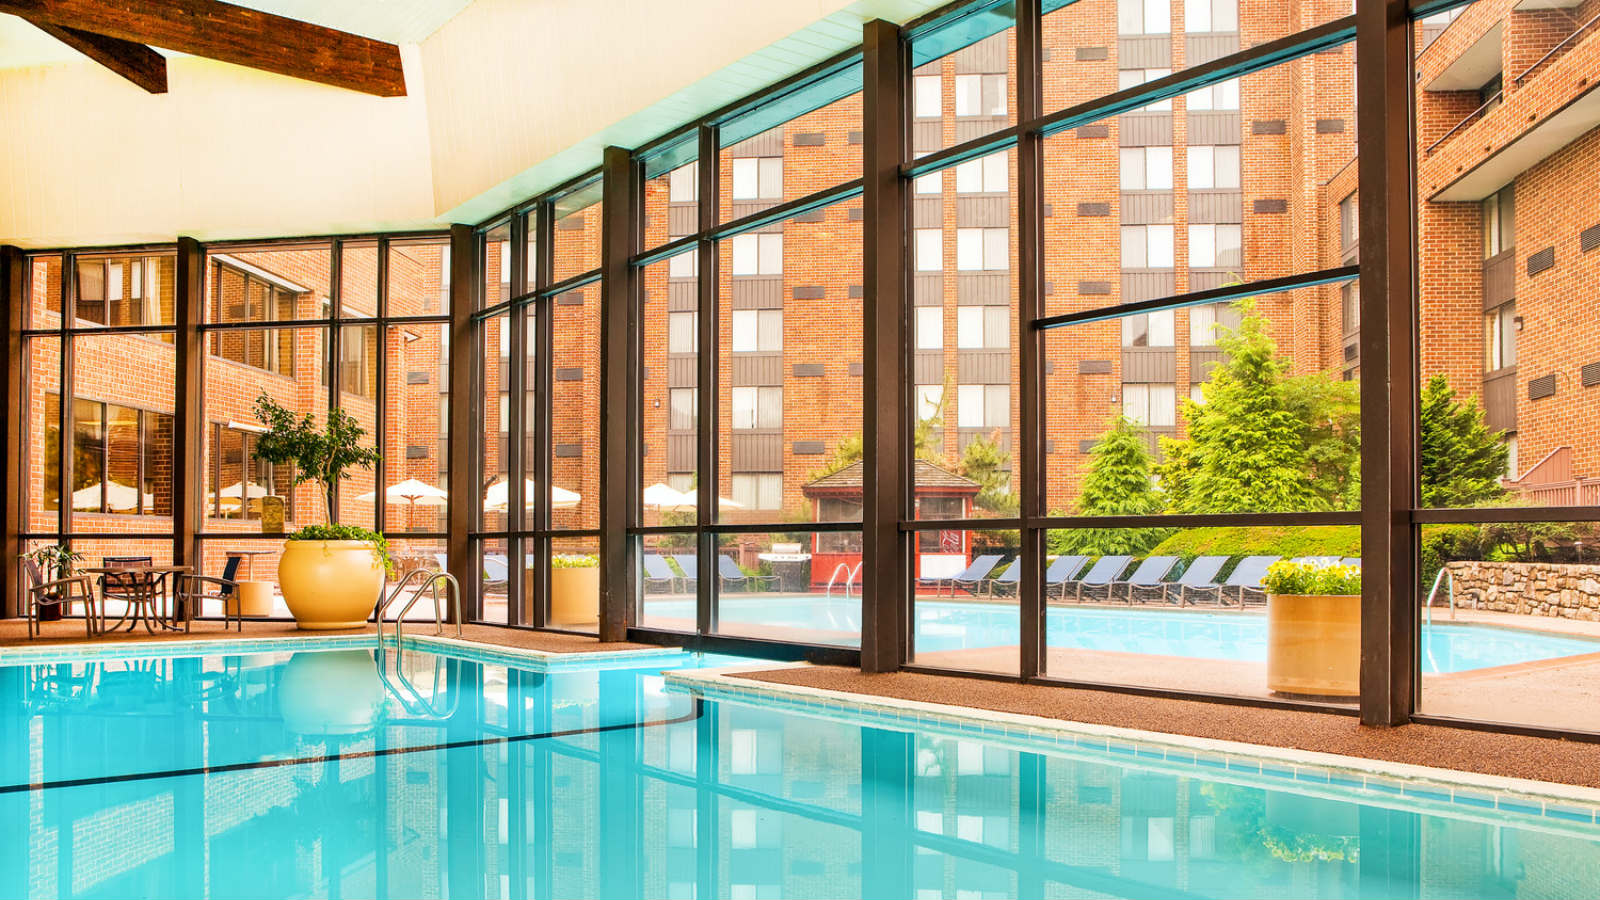 Hotel outdoor pool  Hotel Features | Sheraton Harrisburg Hershey Hotel